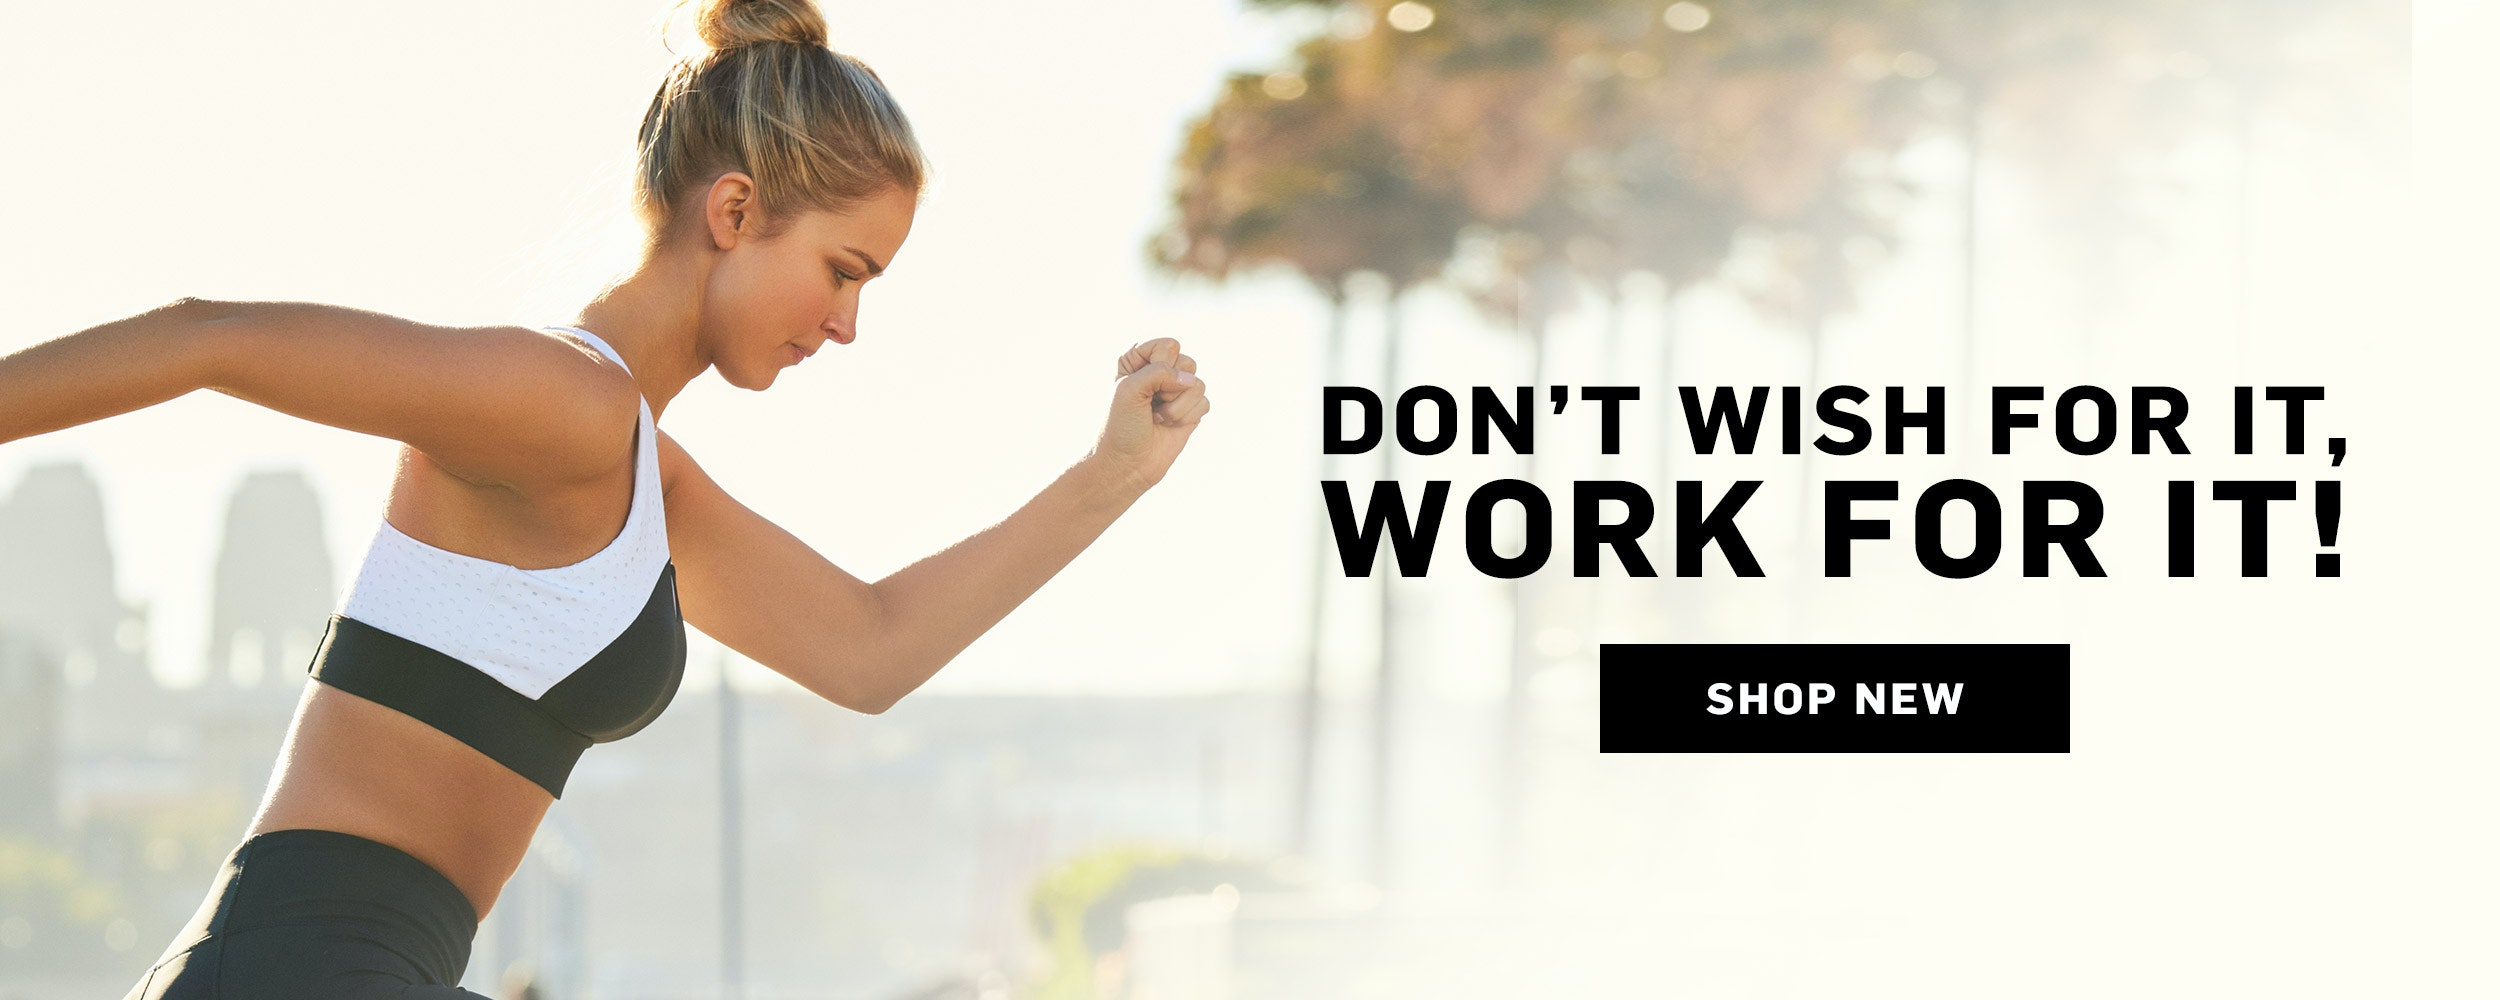 Dont wish for it, work for it - the latest tights, tops and sports bras